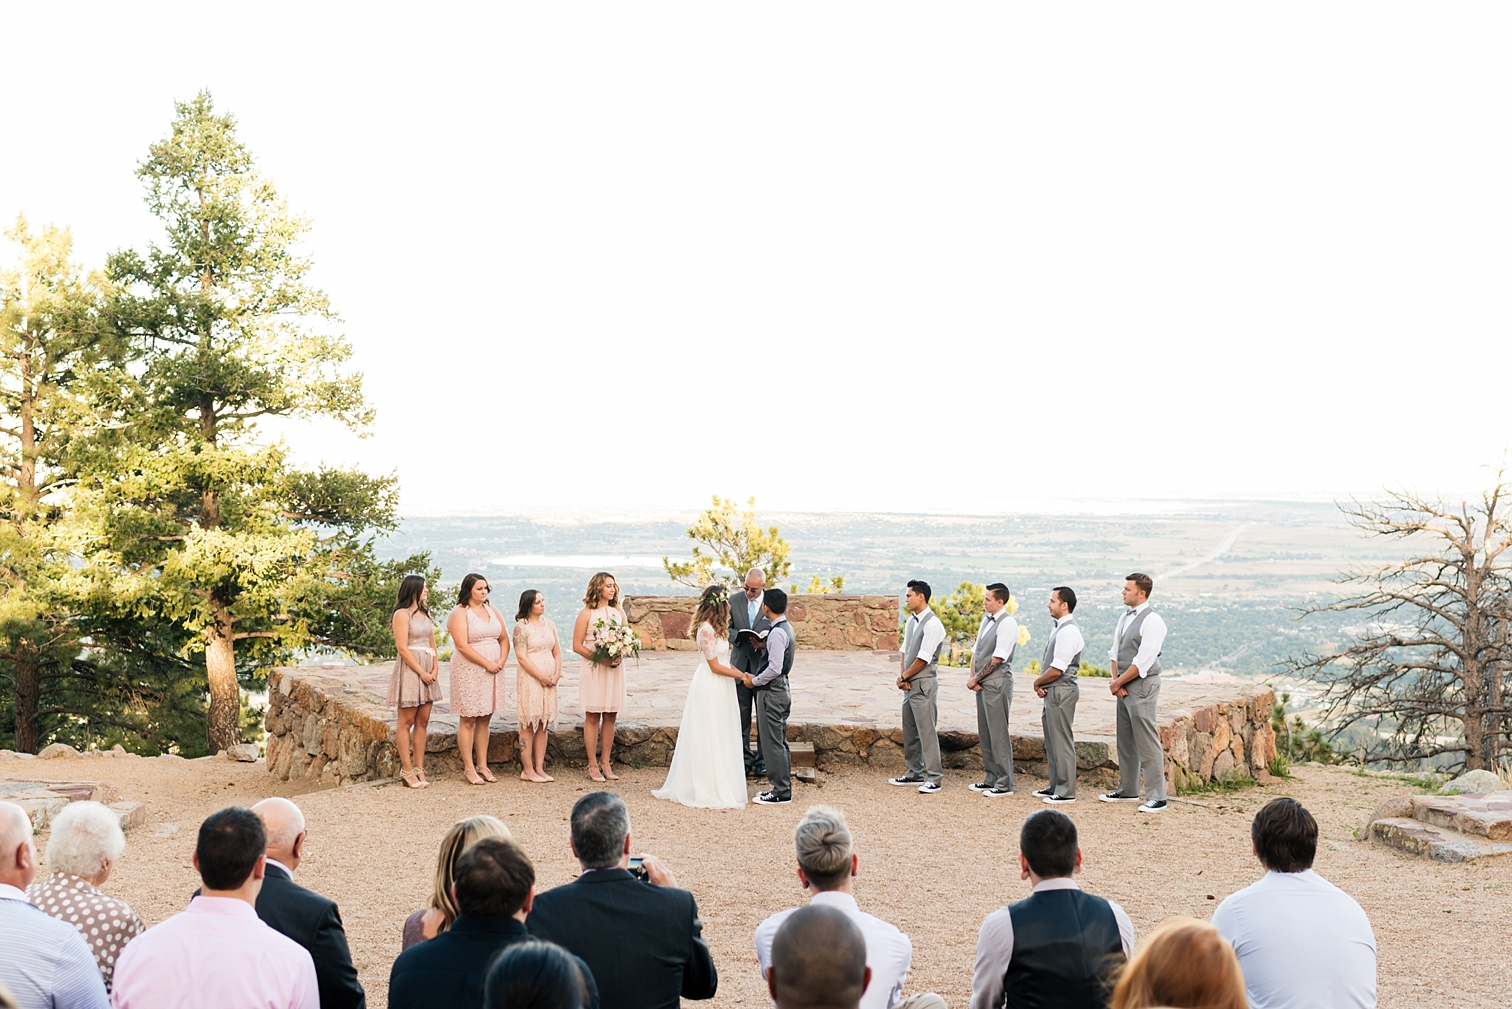 Flagstaff Mountain Wedding, Sunrise Amphitheater, Colorado Photographers, Best Destination Weddings, Danielle DeFiore Photography